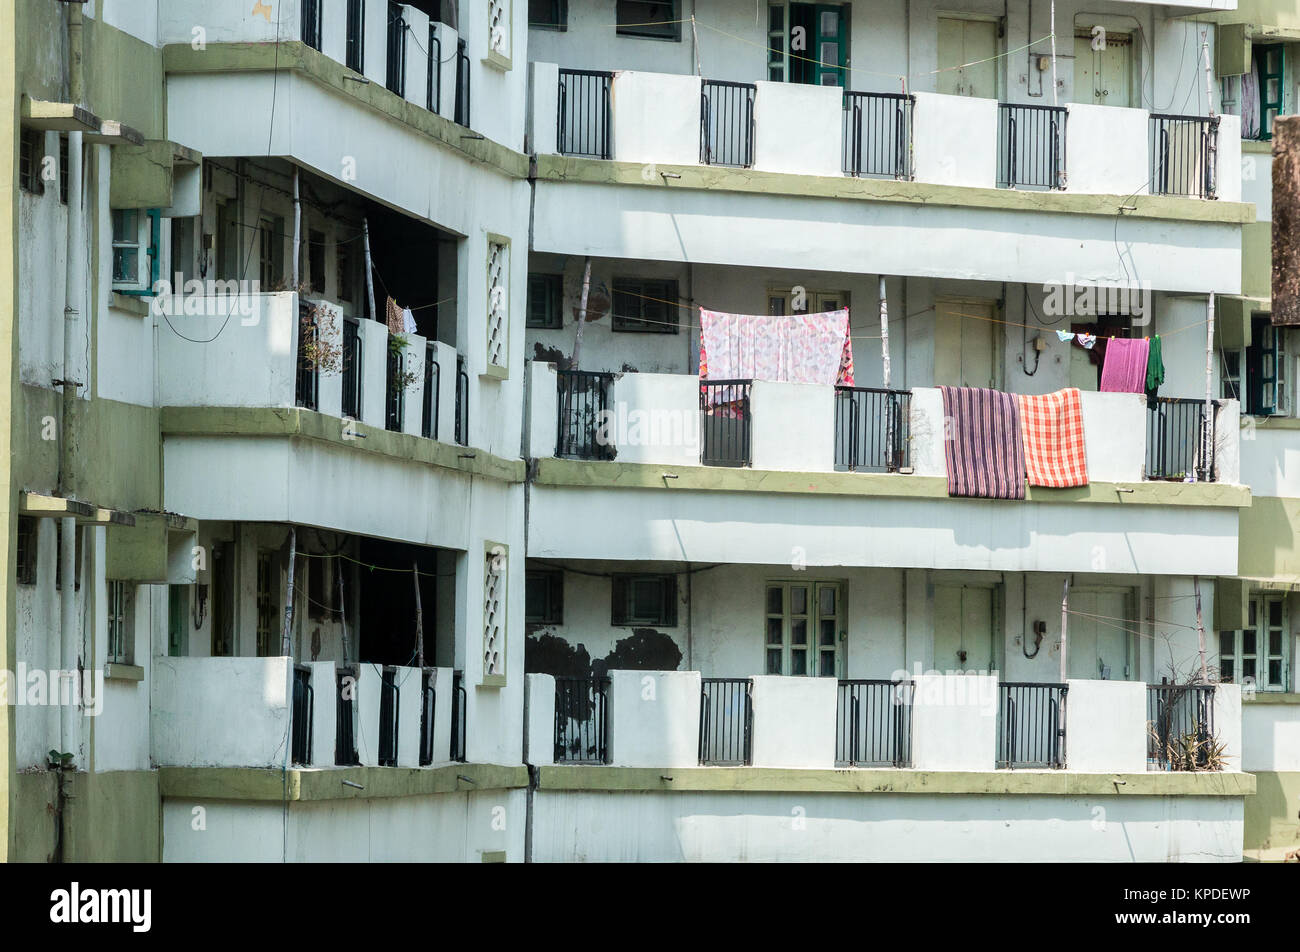 Familes living in bear derelict squalid appartments in Kolkata. - Stock Image